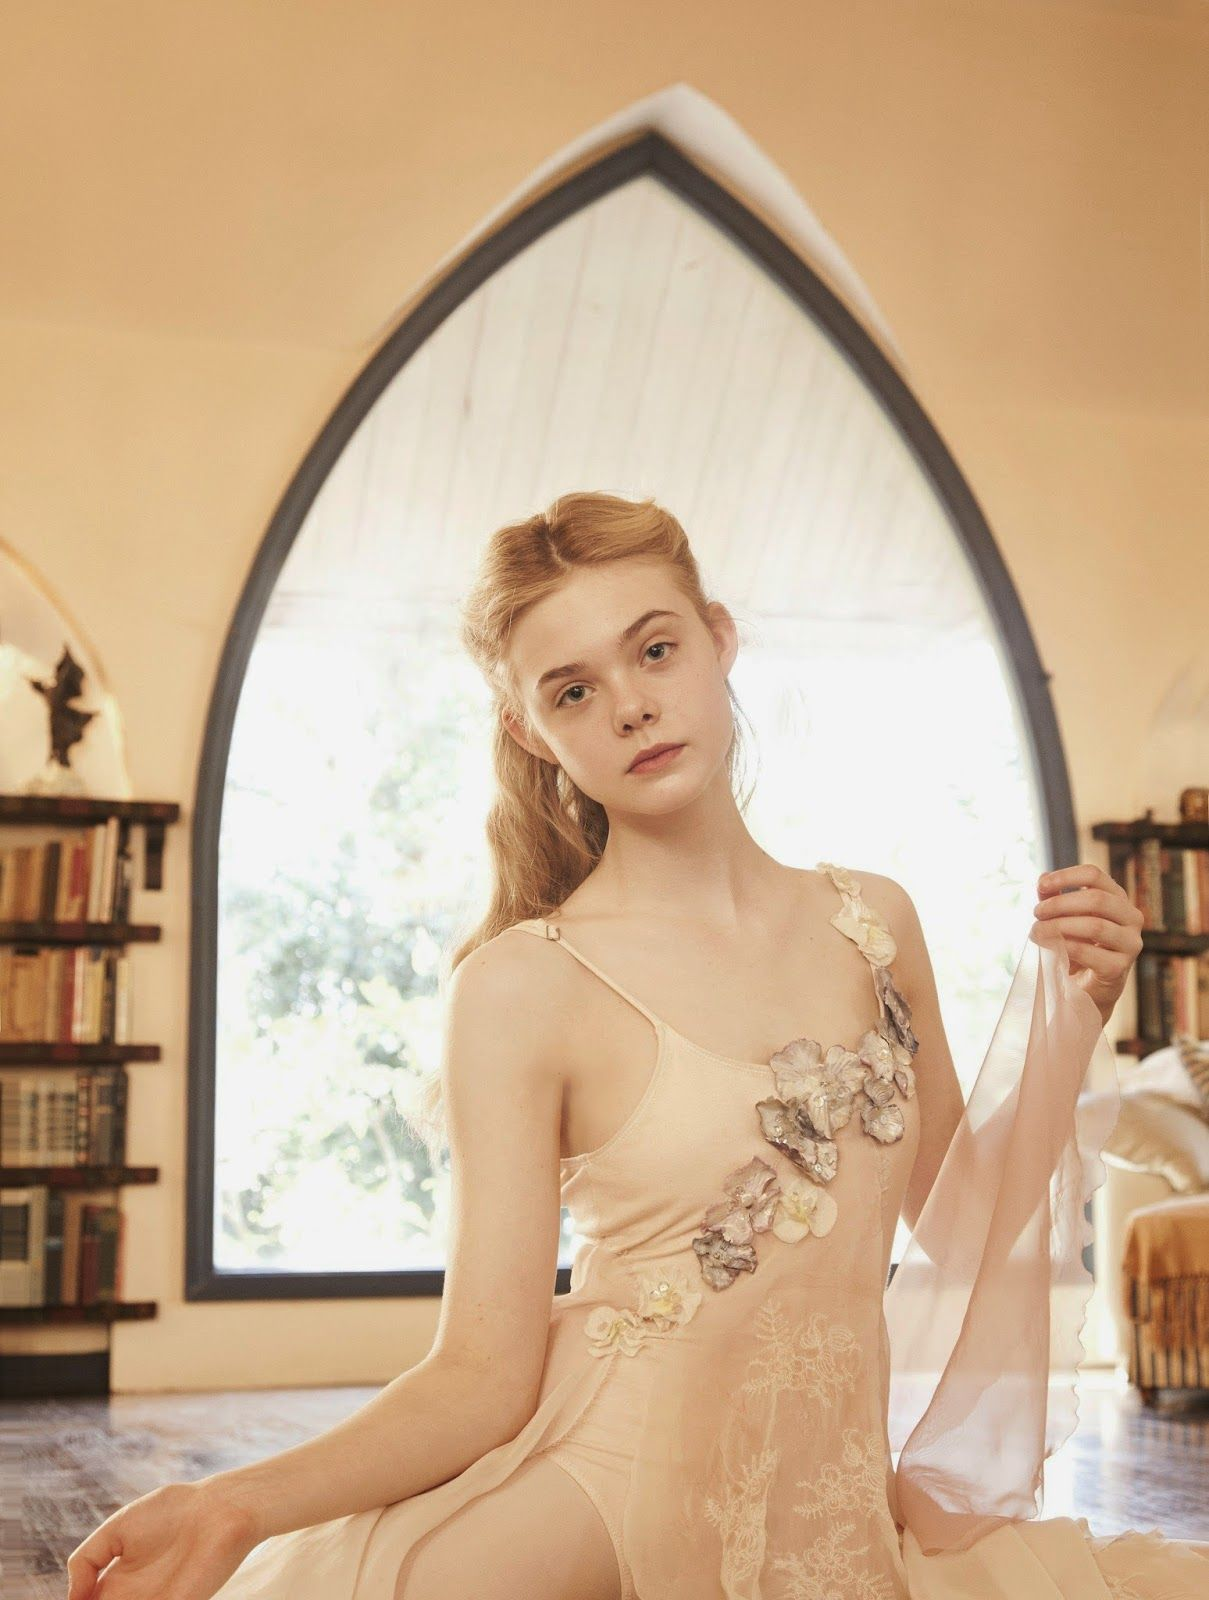 Elle Fanning young and innocent - Elle Fanning Net Worth, Family, Movies, Private Life, Pictures and Wallpaper